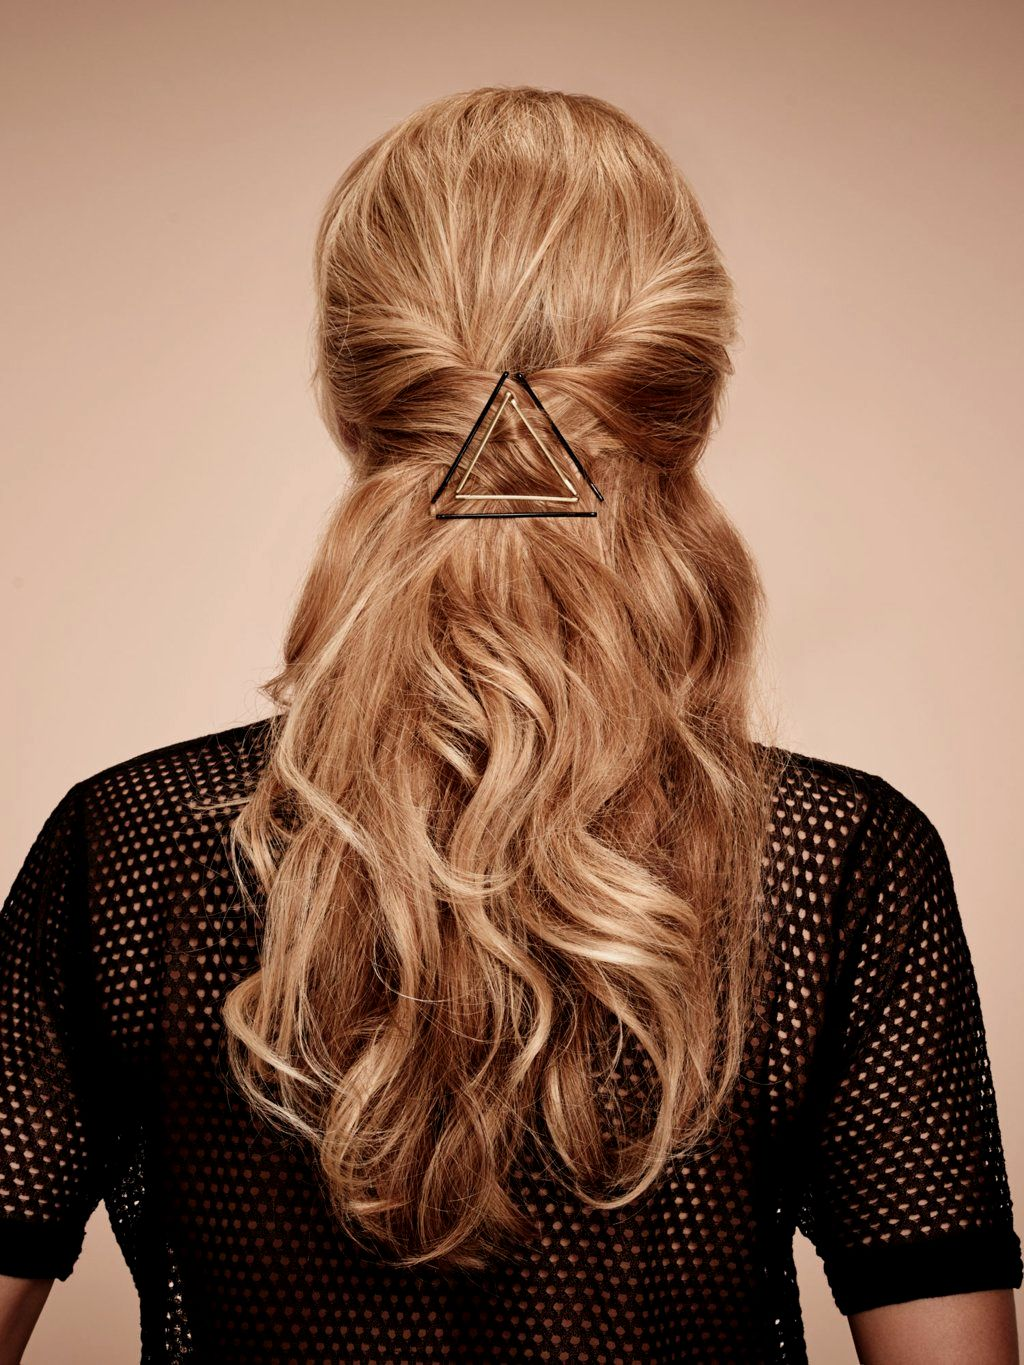 top romantic hairstyles background-fresh Romantic hairstyles models